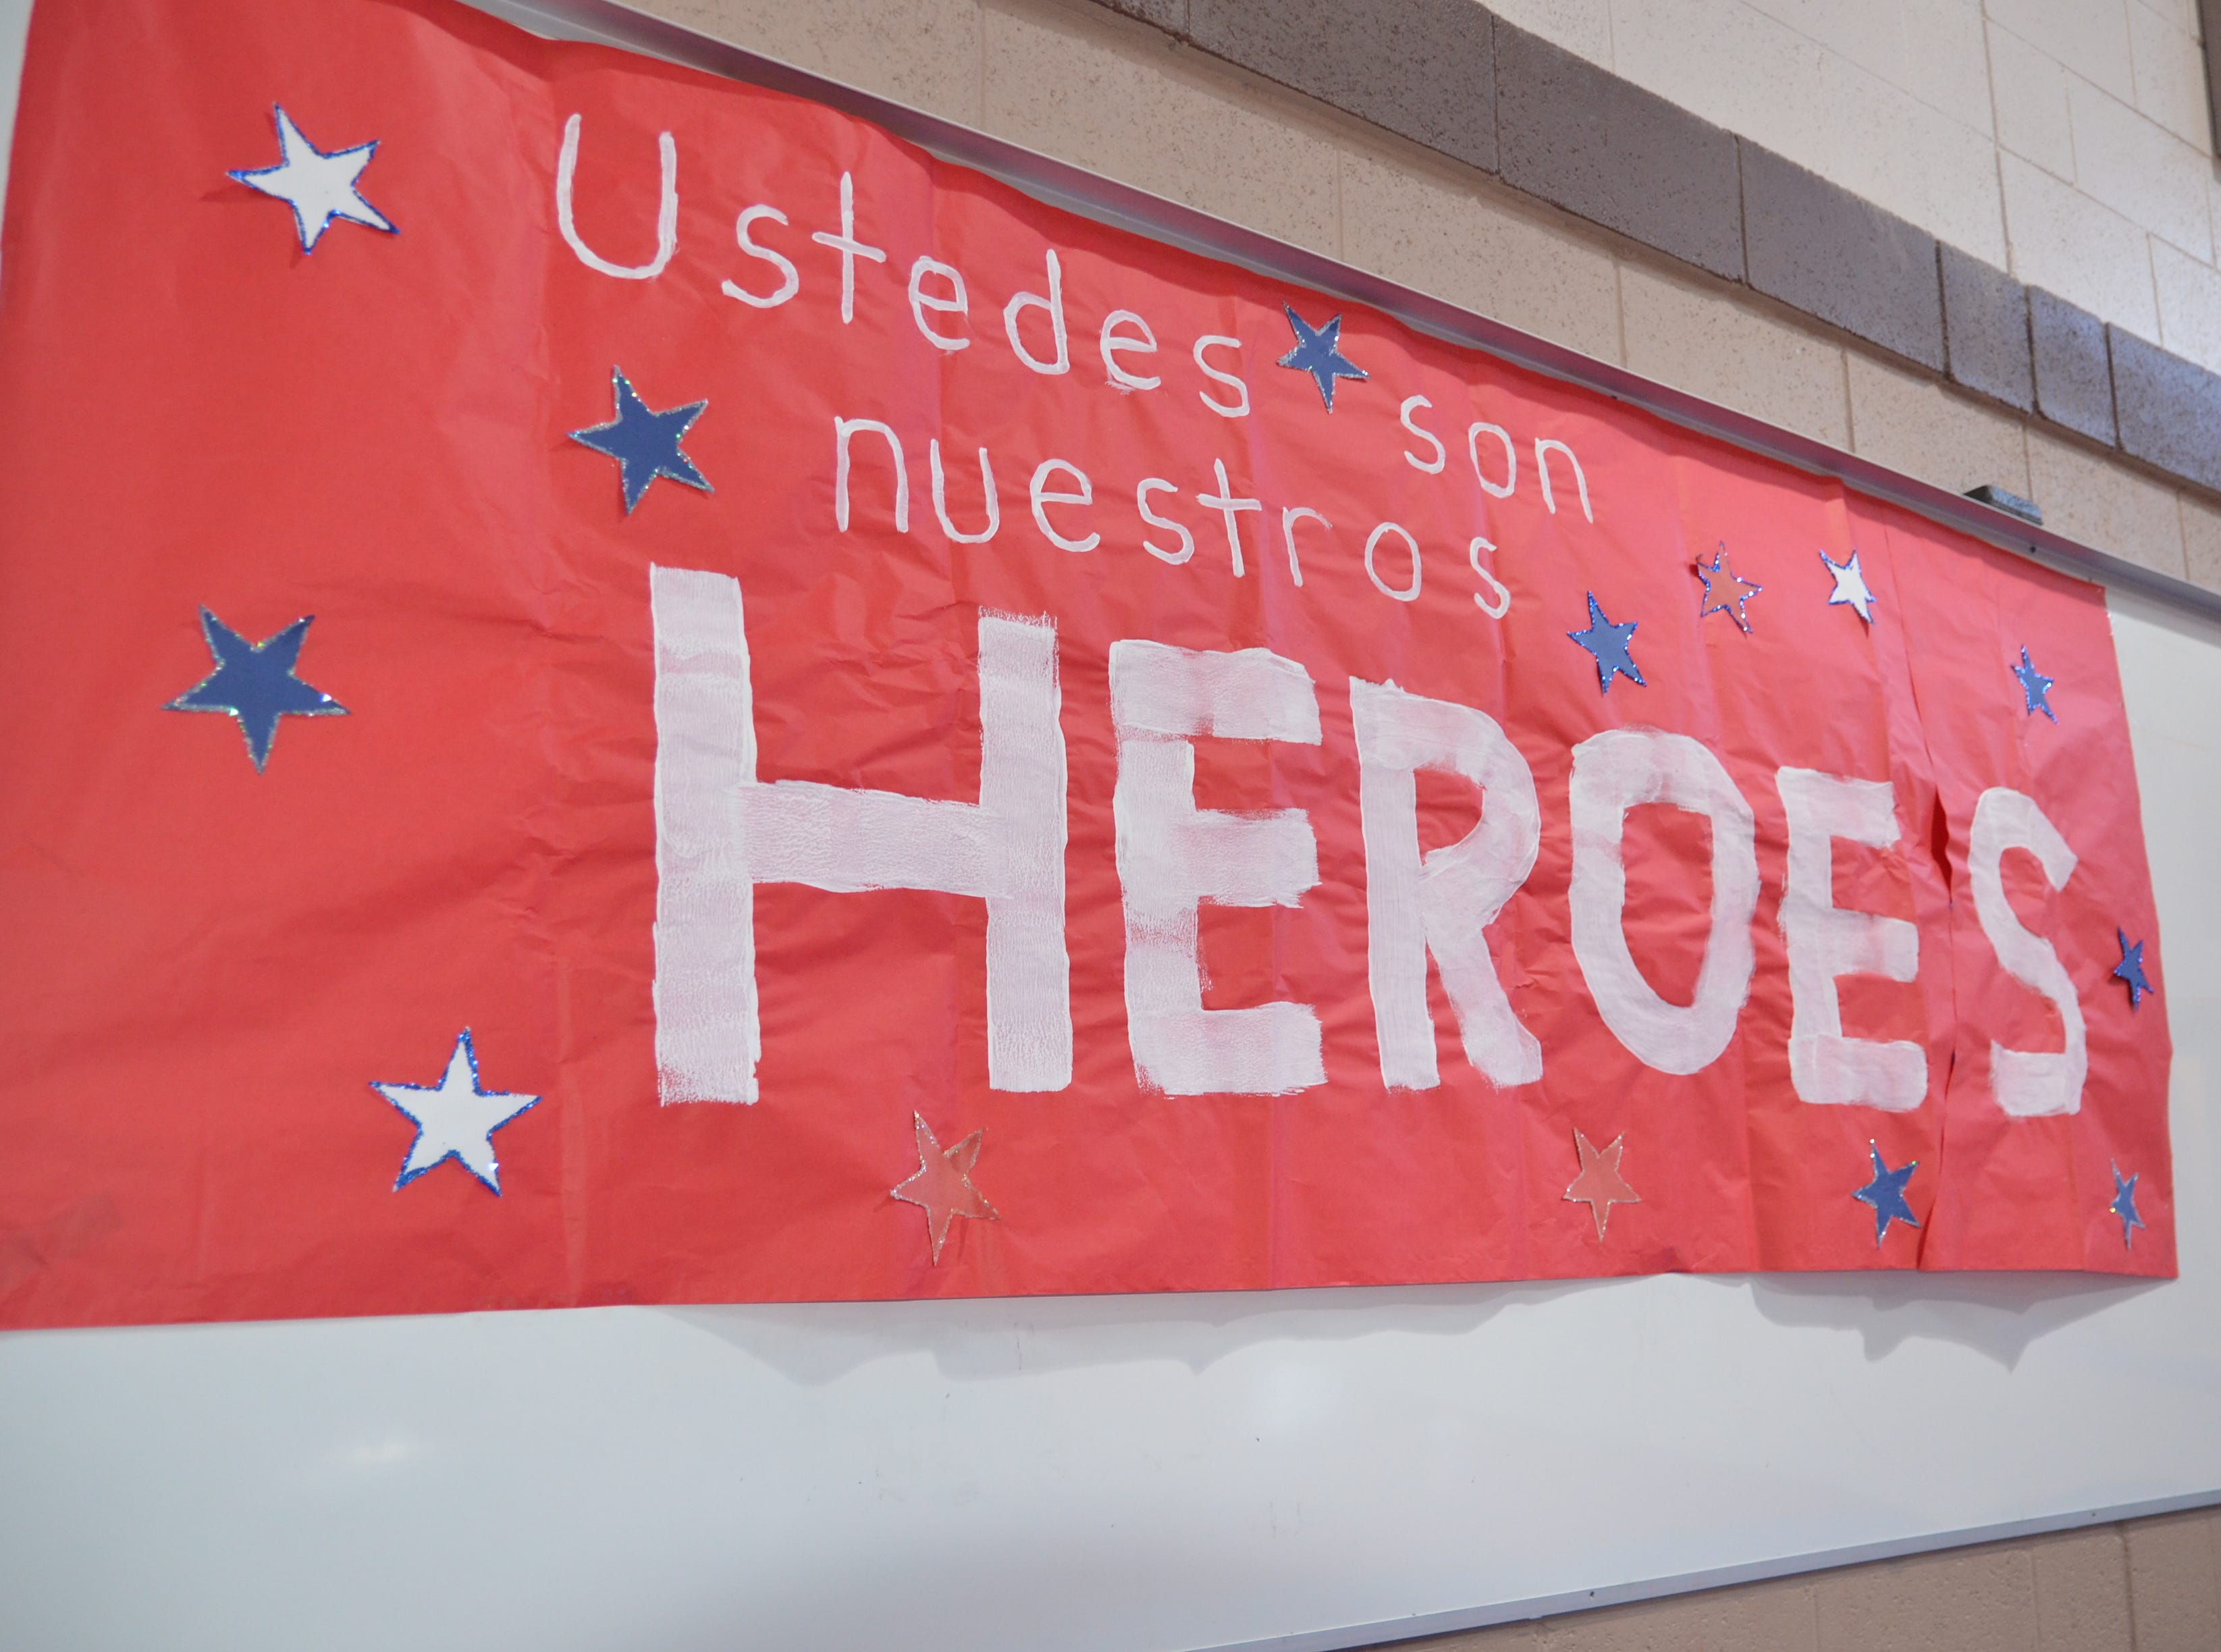 A sign that reads: Ustedes son nuestros heroes (You are our heroes). Hung in Ruben S. Torres Elementary School auditorium.